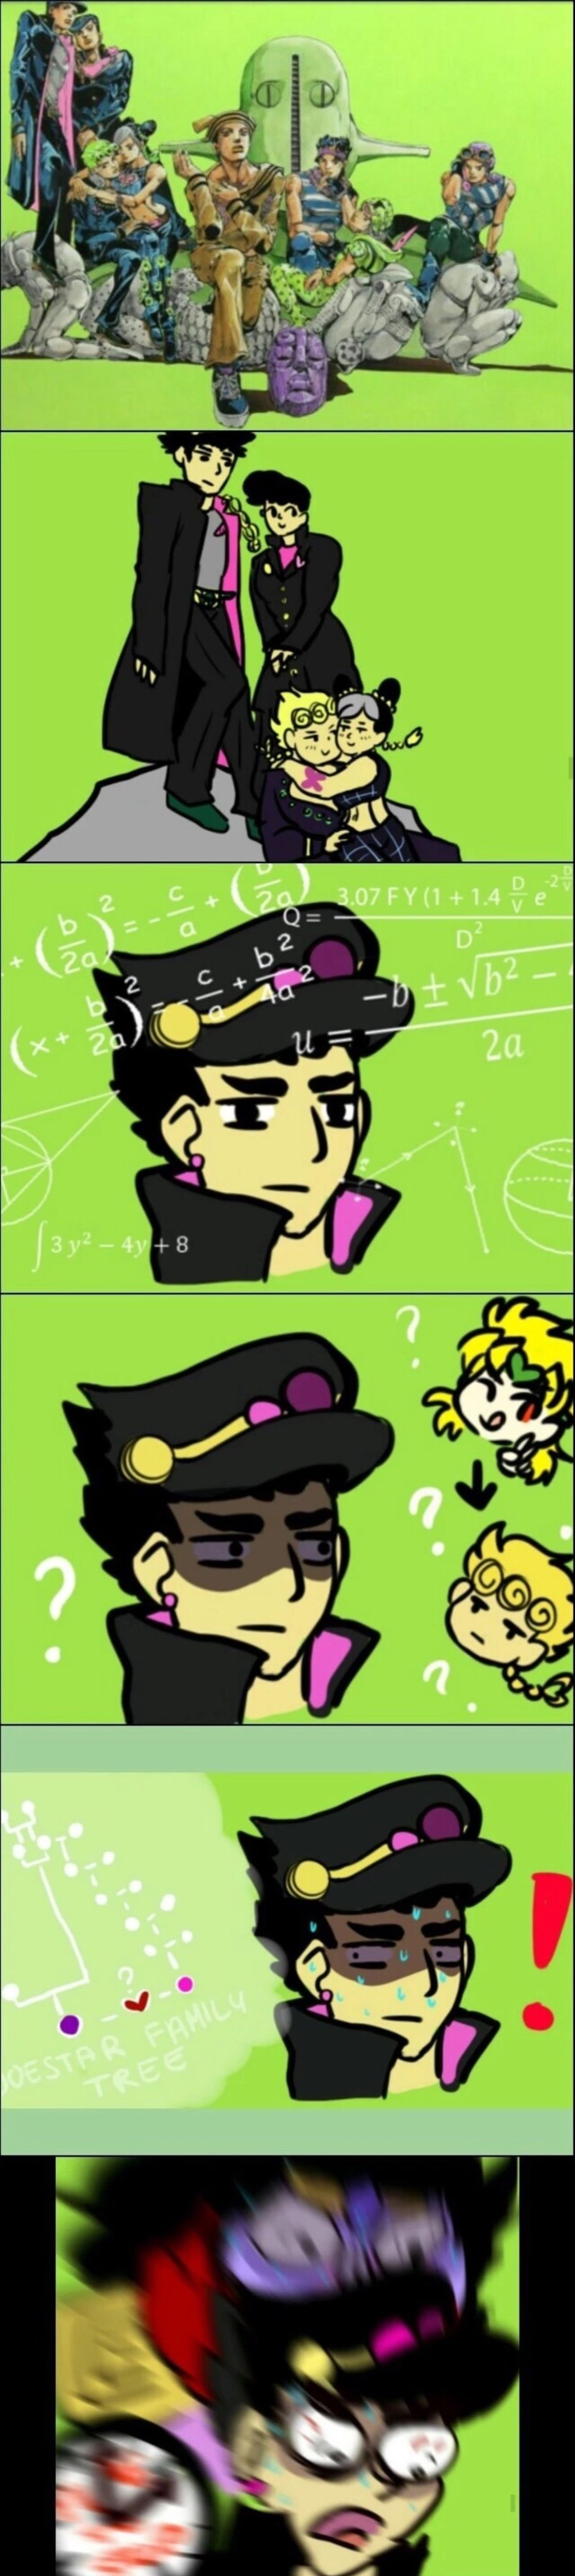 Jojo's Bizzare Complex. .. I feel so sorry for Jotaro and his sitcom family tree situation.